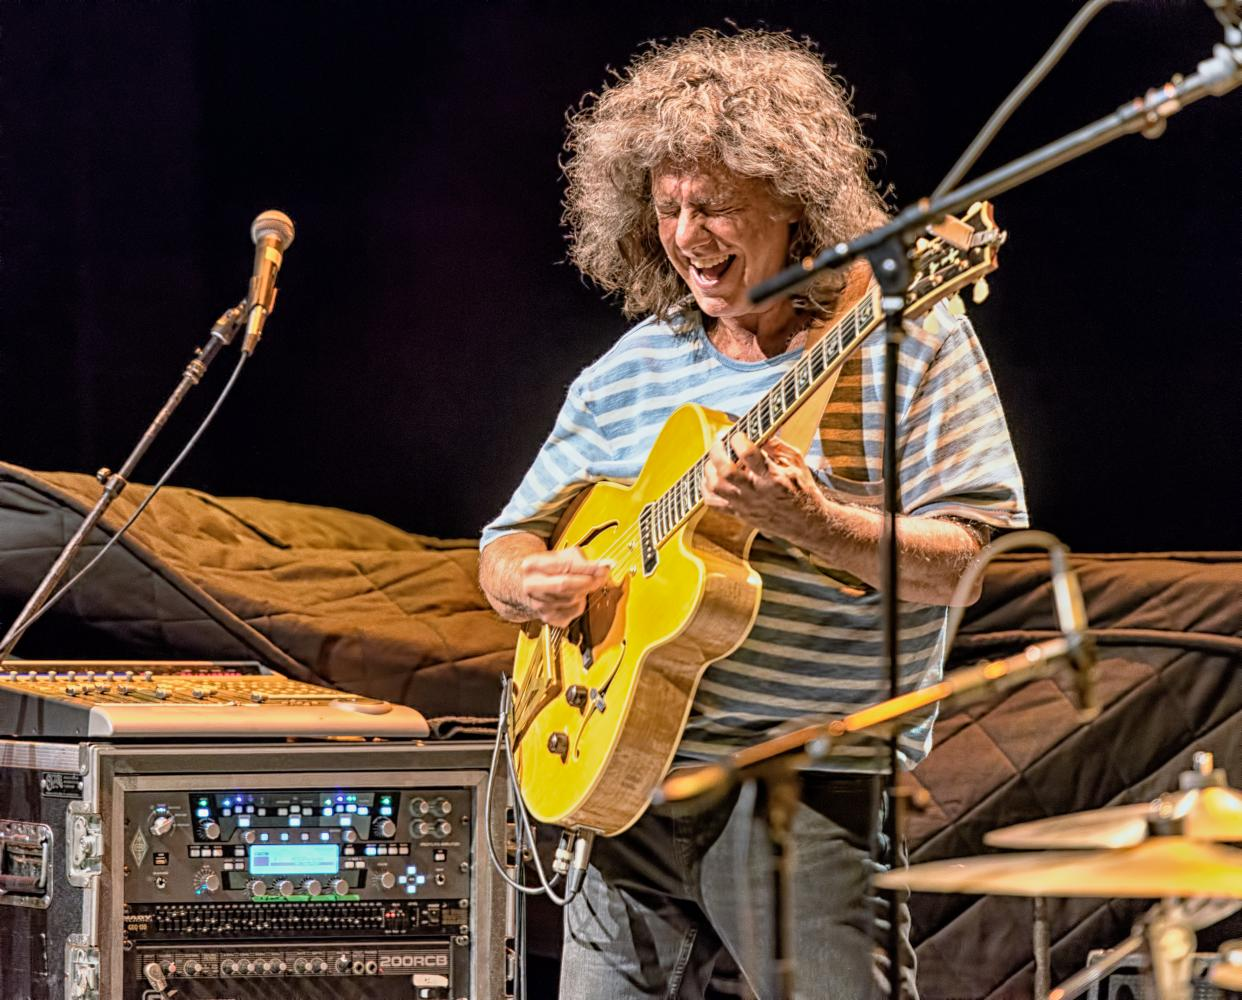 Pat Metheny with Quartet at the Scottsdale Center for the Performing Arts, Scottsdale, AZ